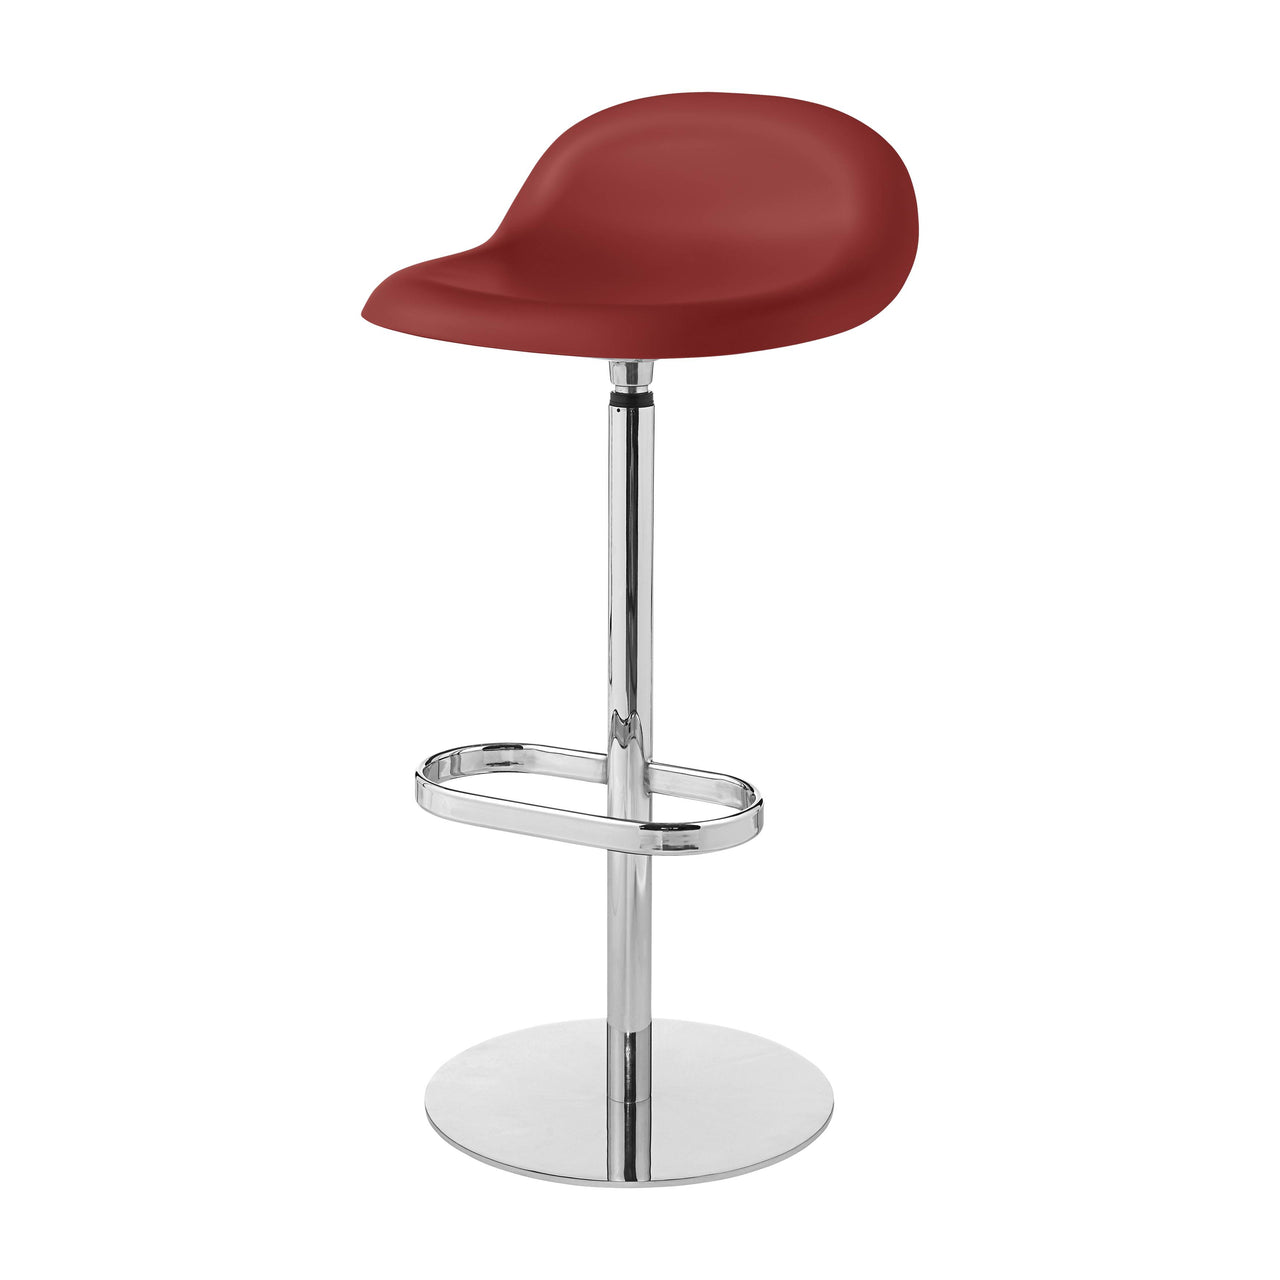 3D Bar Stool: Swivel Base + Shy Cherry